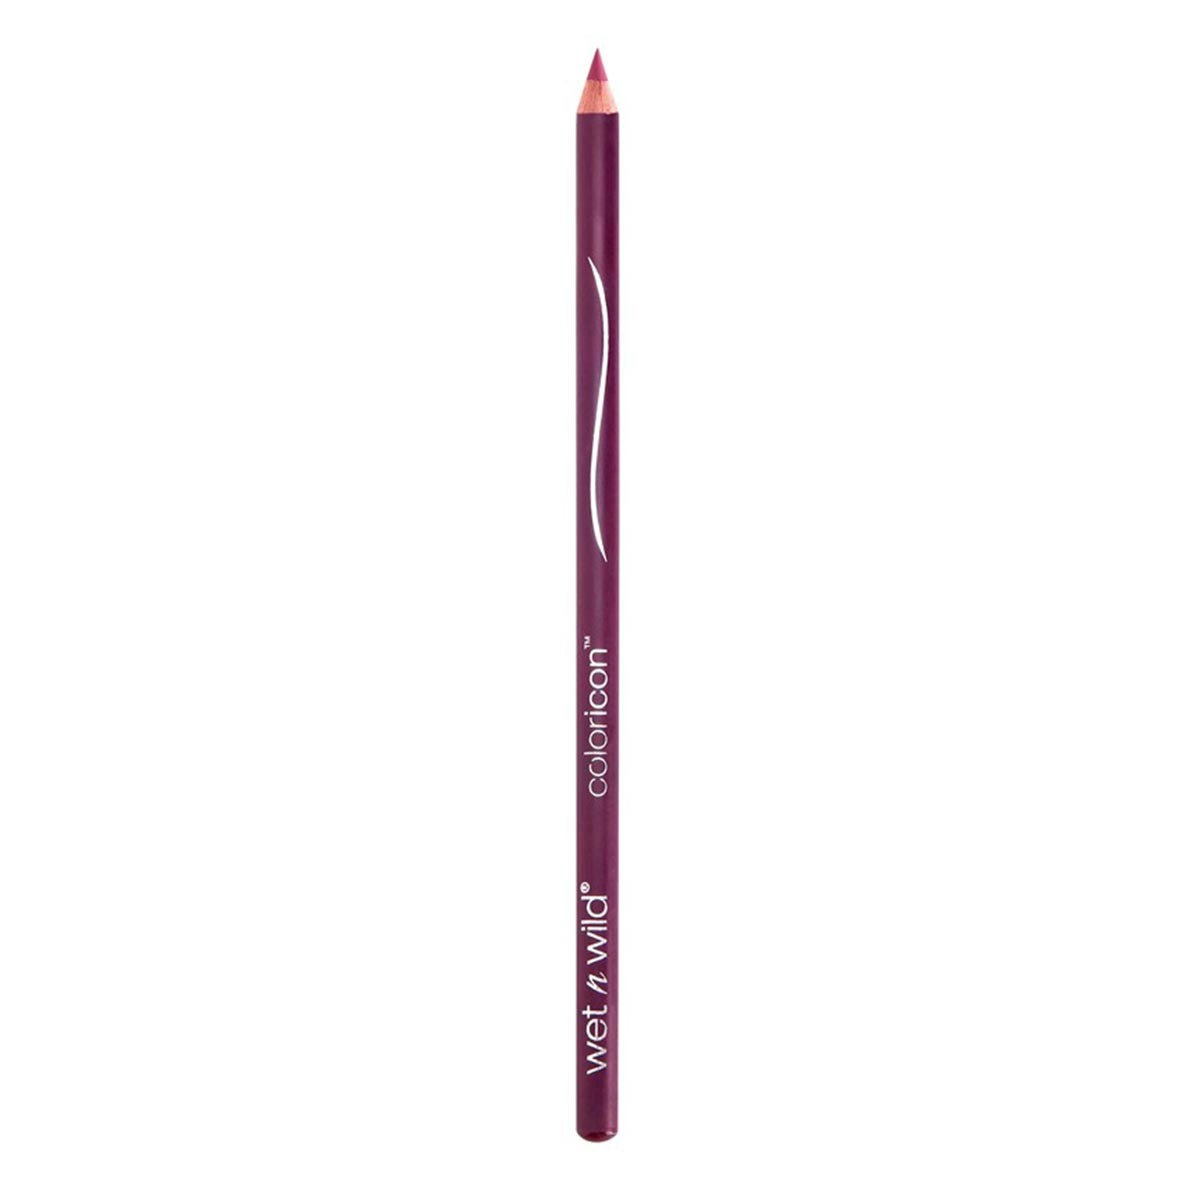 Wet n wild fragrances Coloricon Lipliner Fab Fuchsia